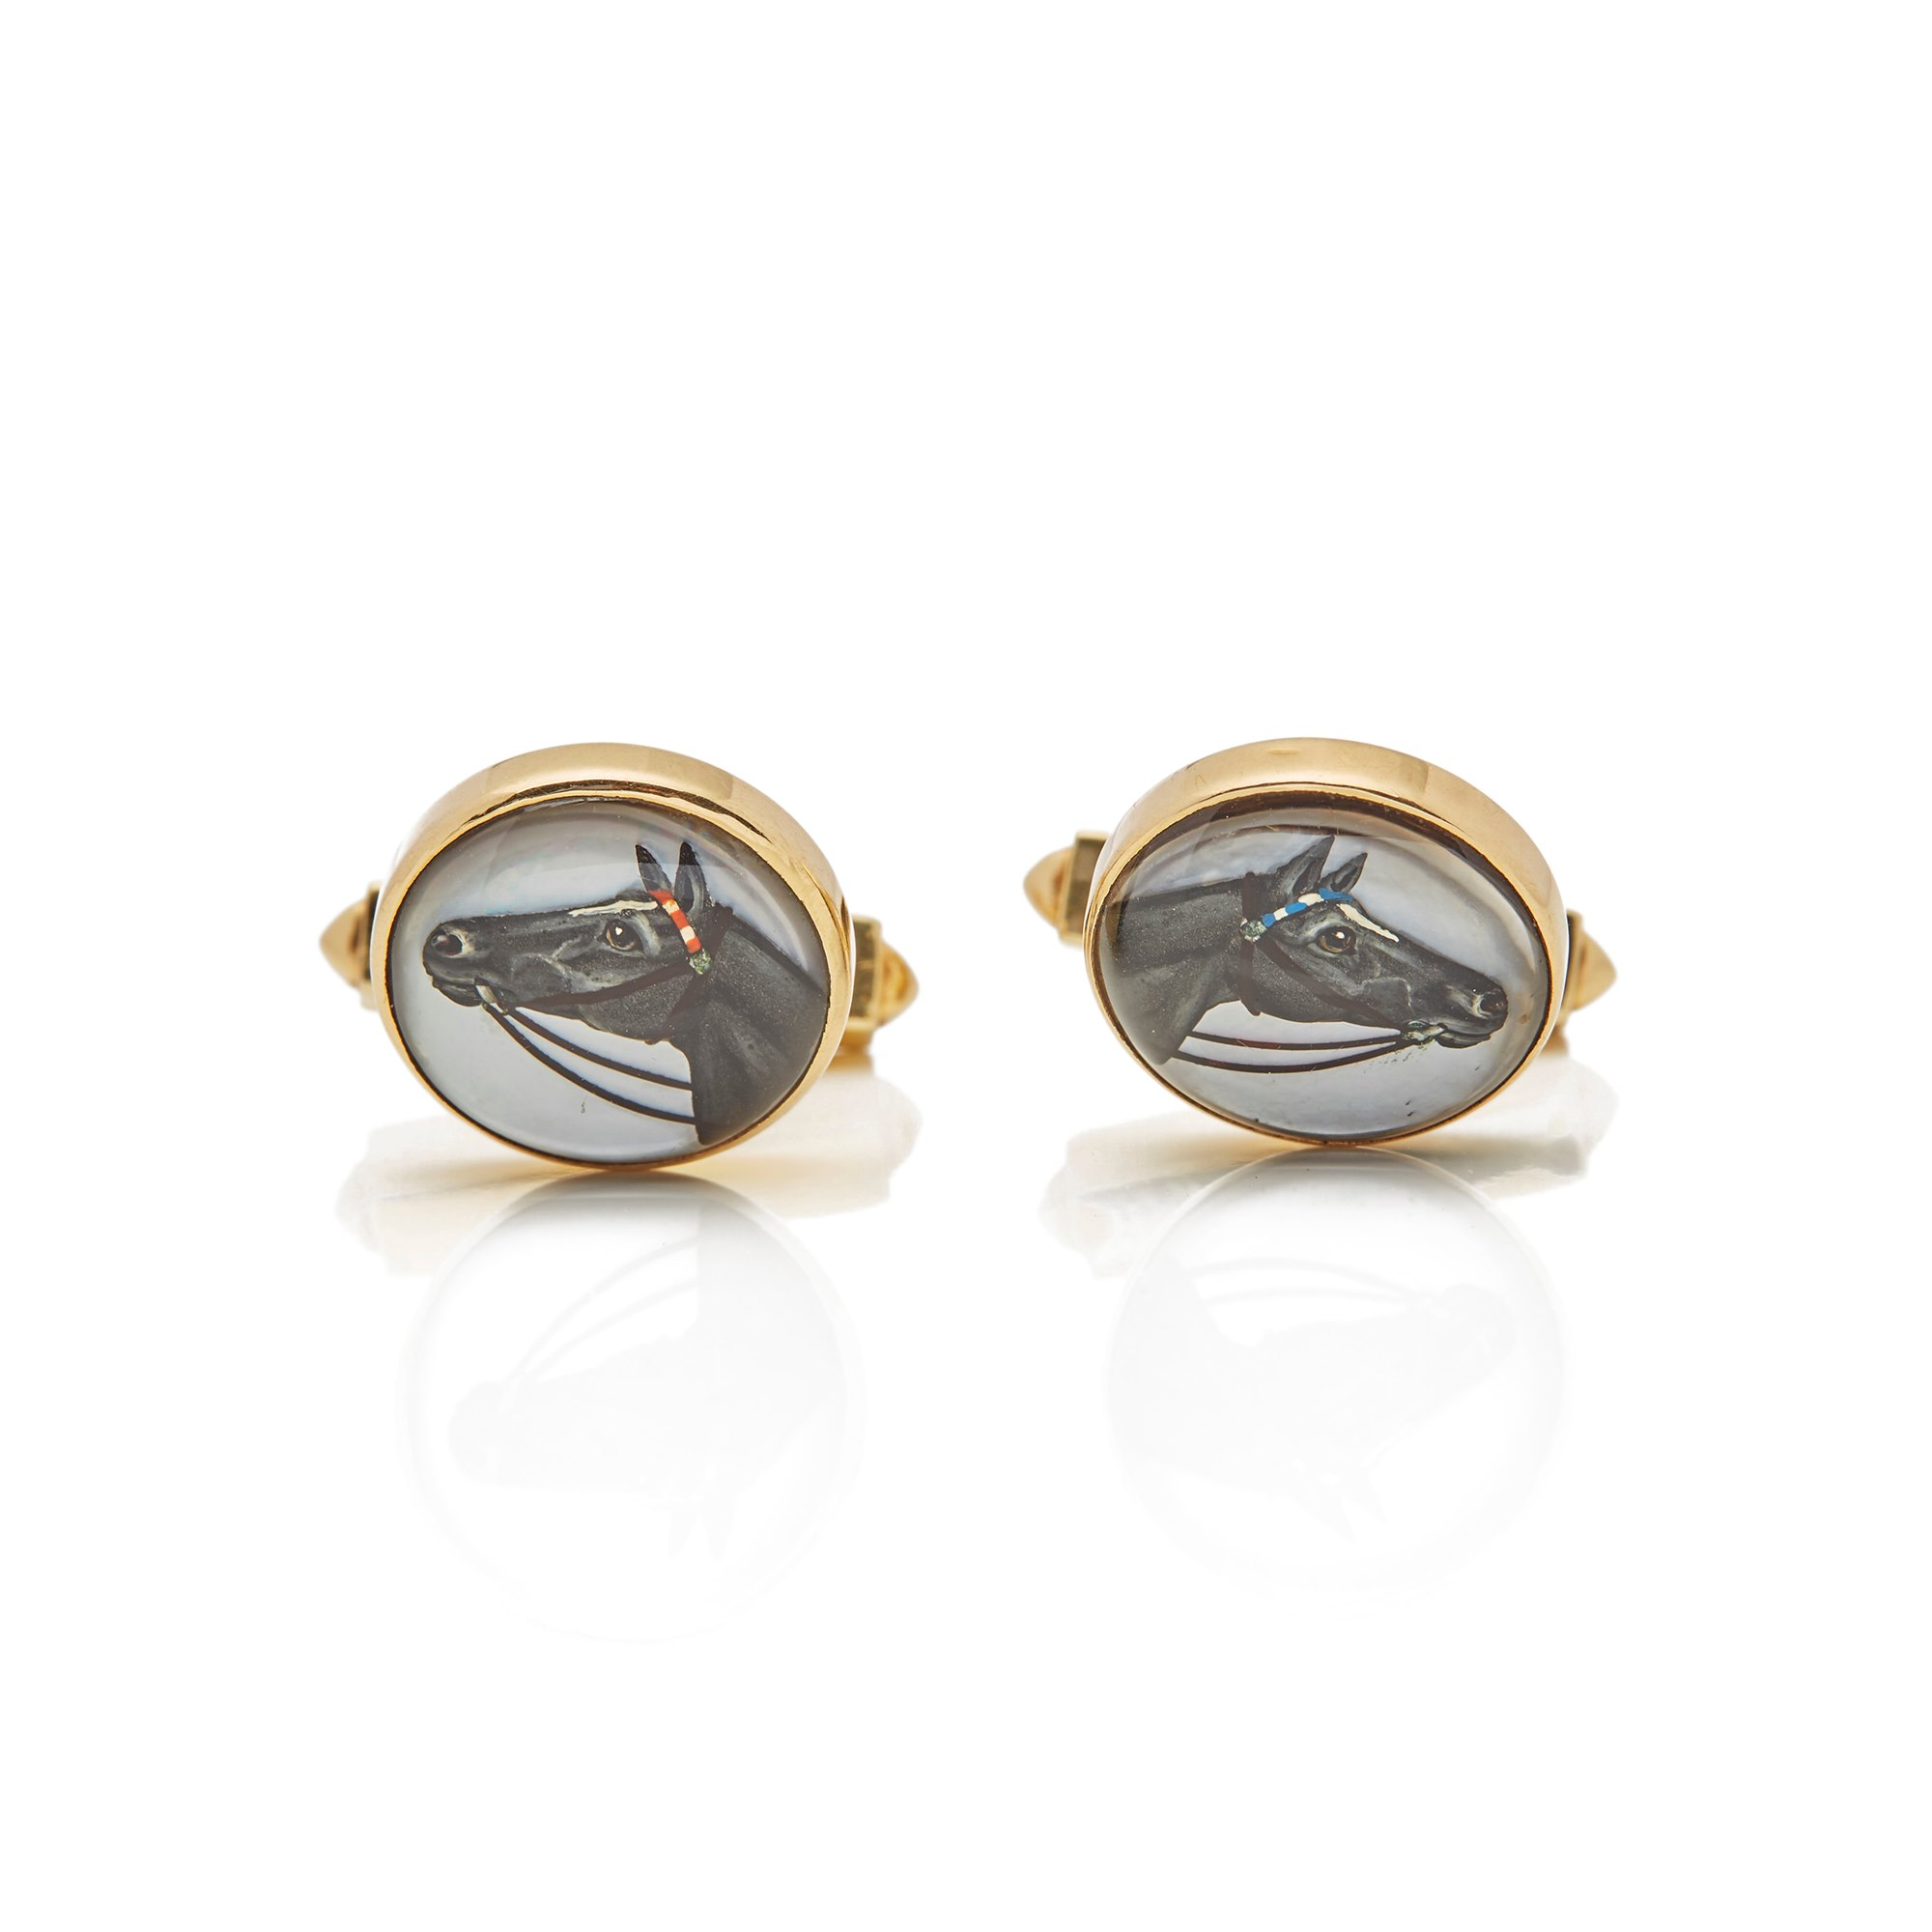 Essex Crystal 14k Yellow Gold Equestrian Cufflinks